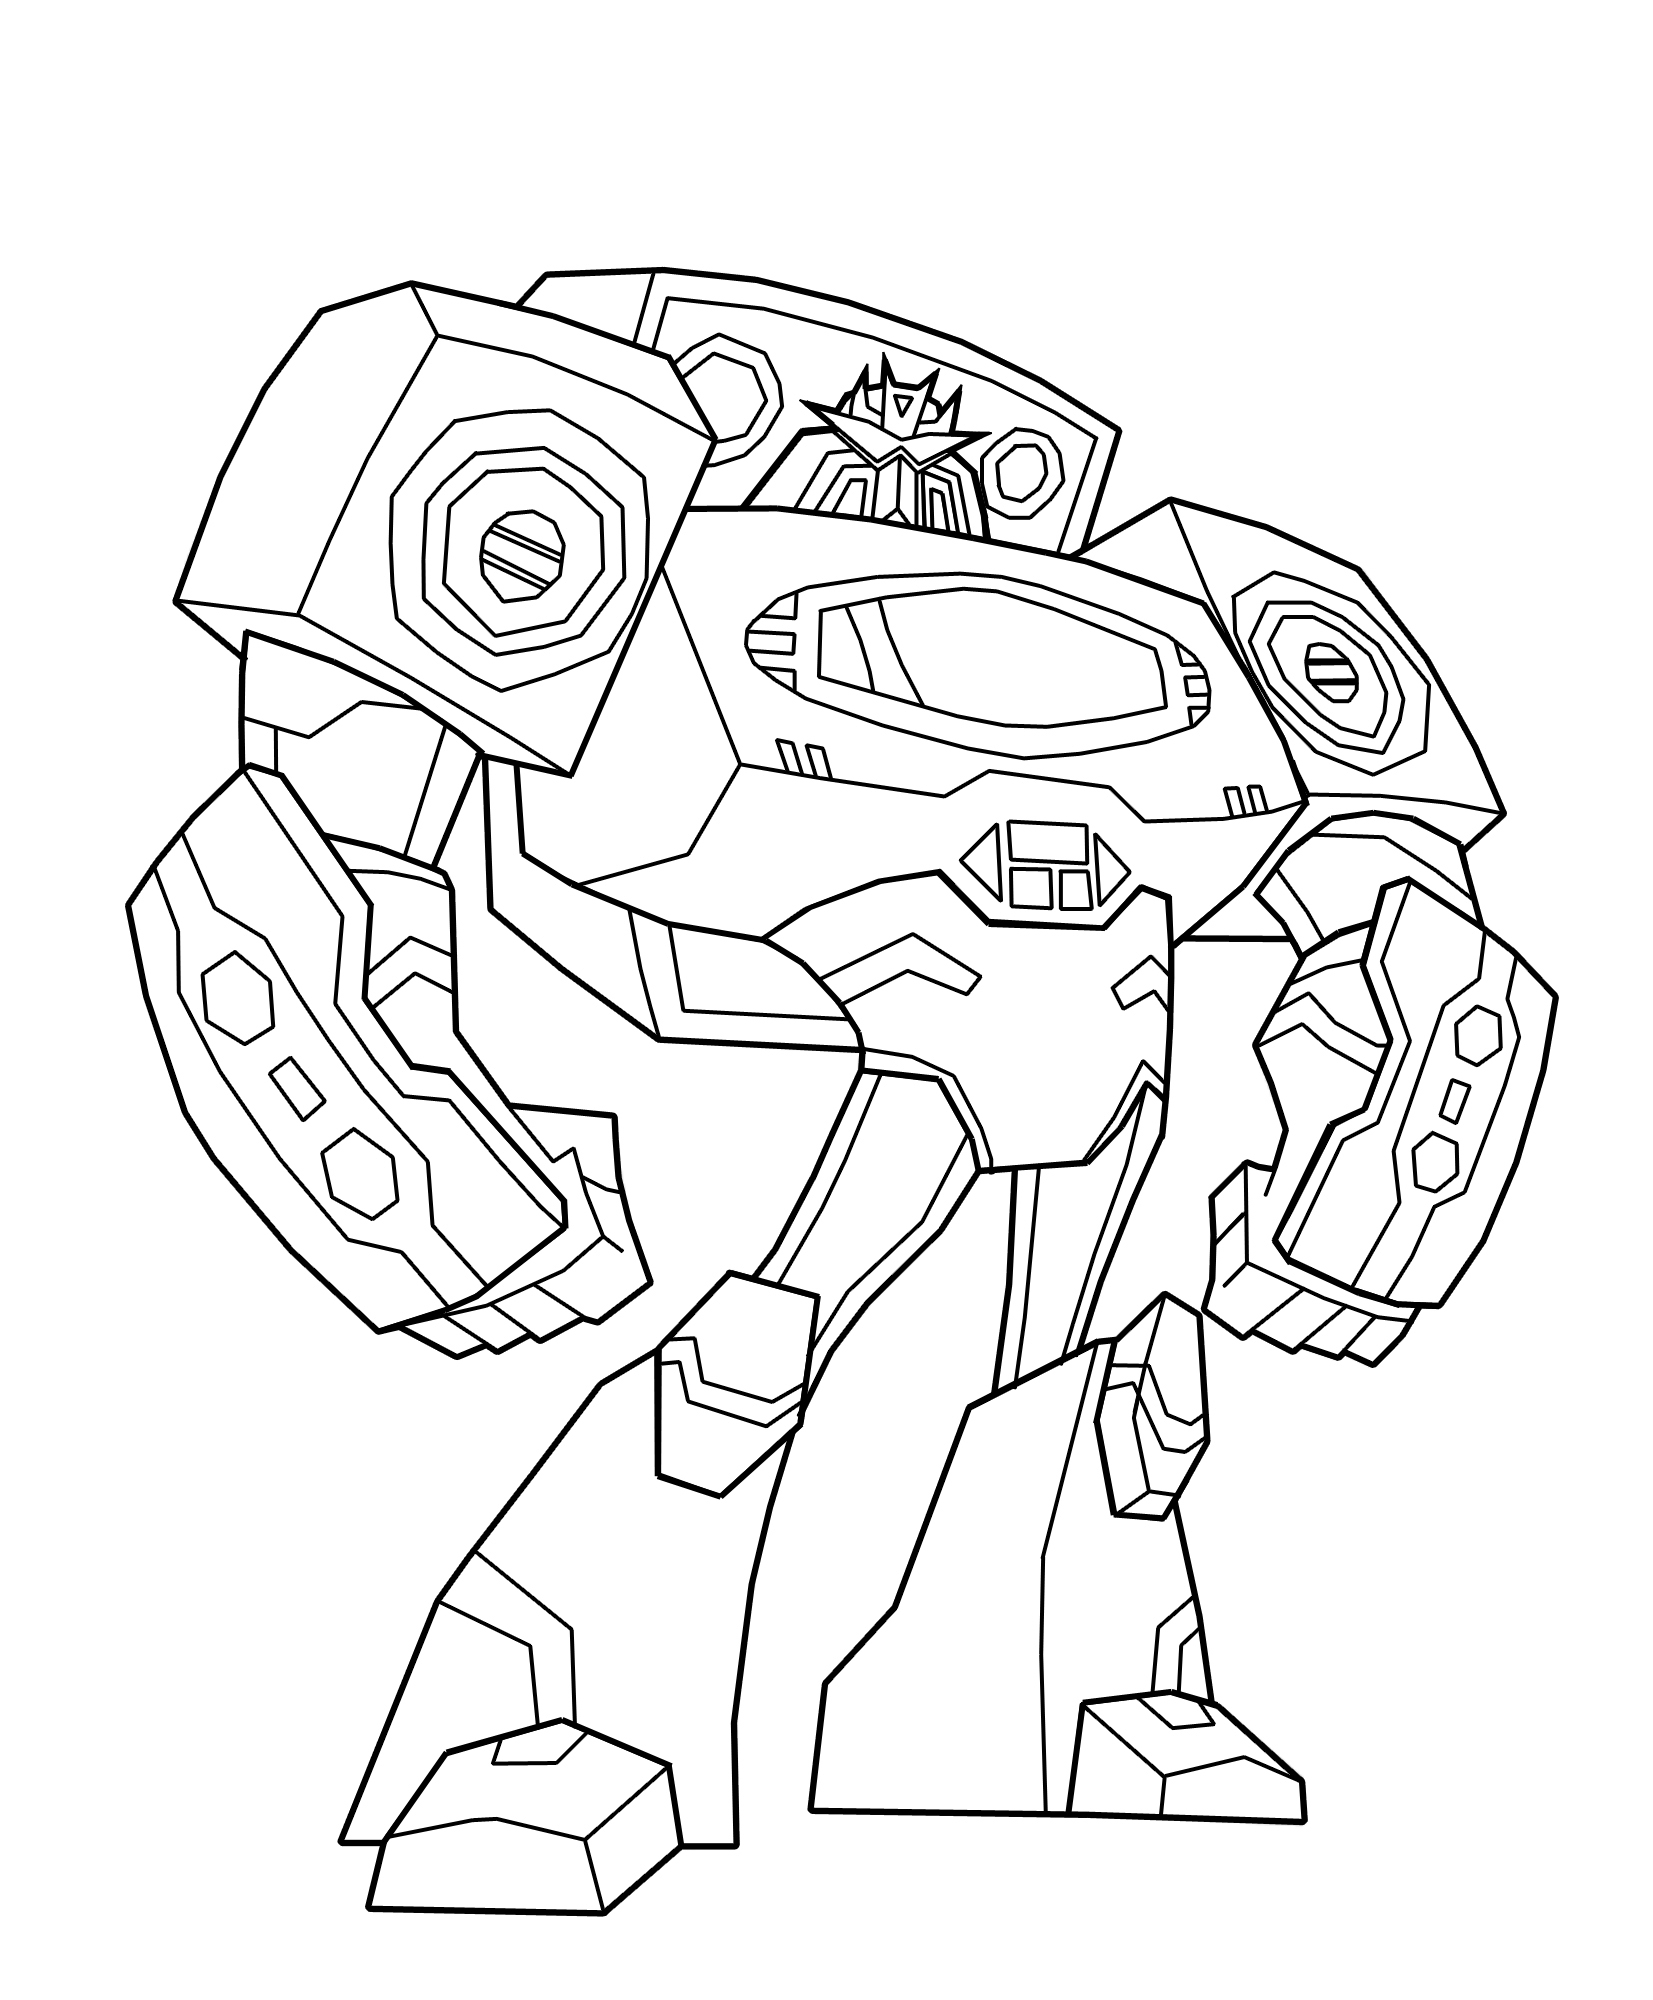 transformer colouring in transformers coloring pages transformer in colouring 1 1